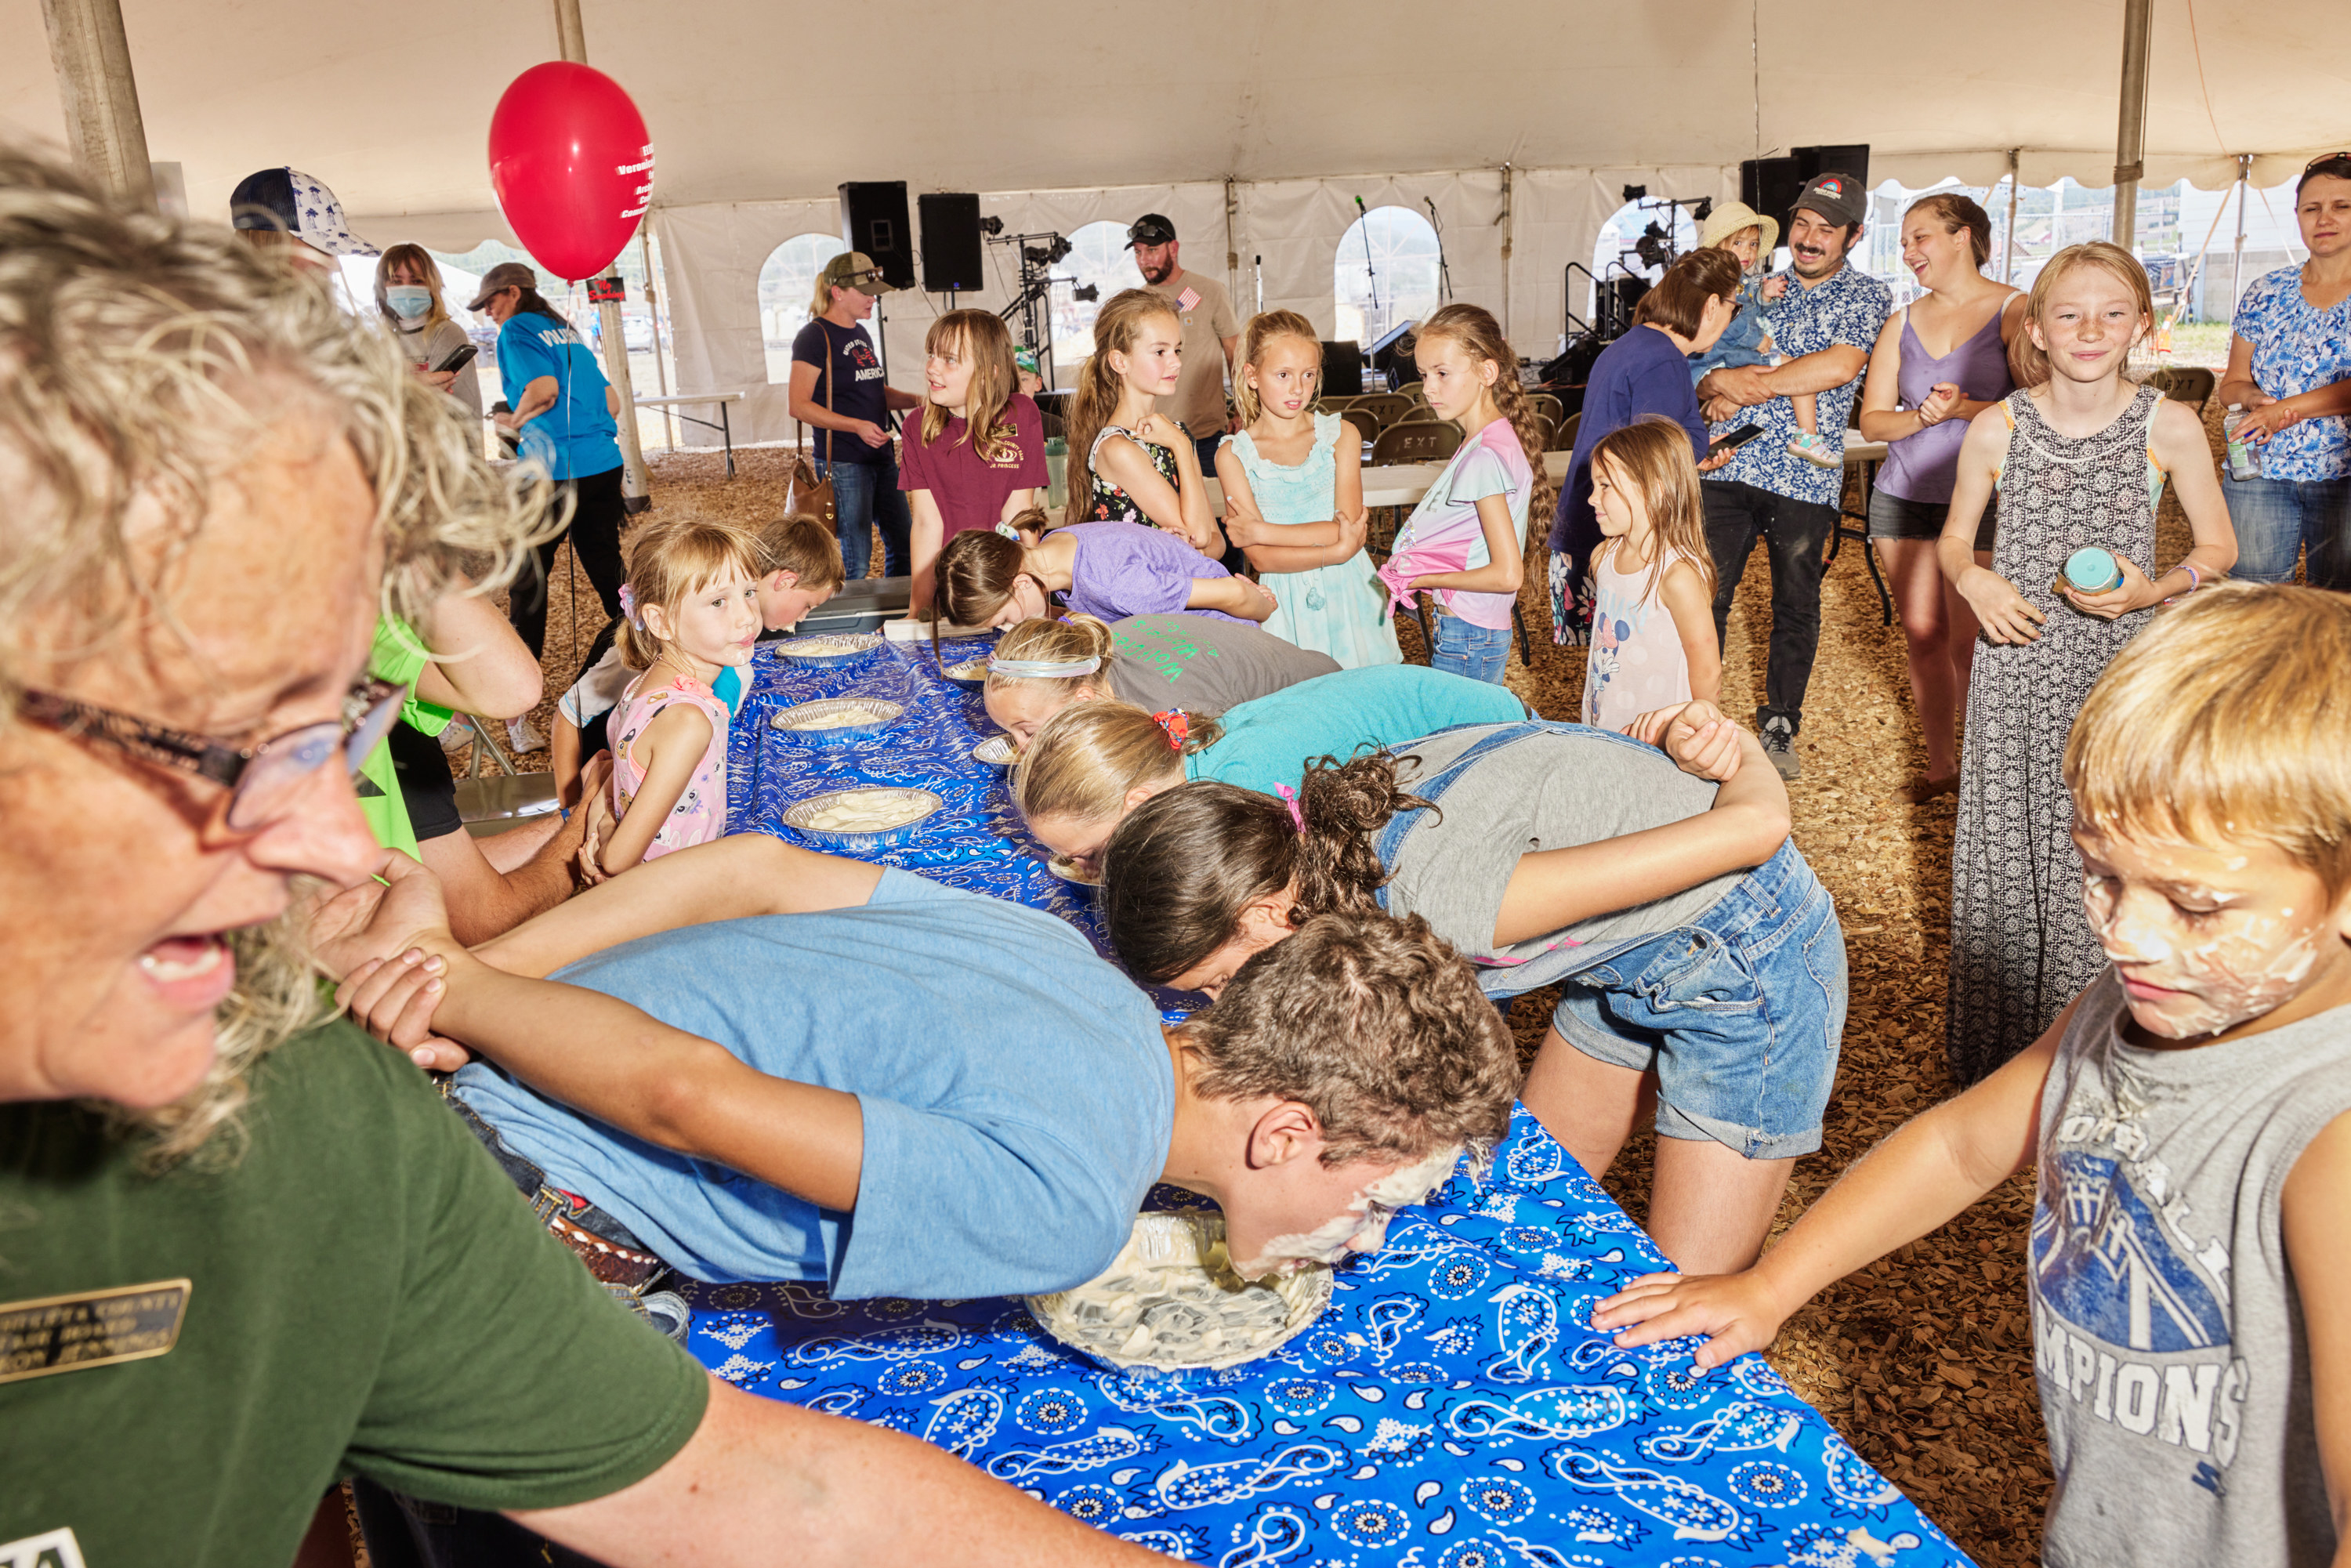 Two long rows of children with their heads bent down over a long table eating pie as a crowd looks on